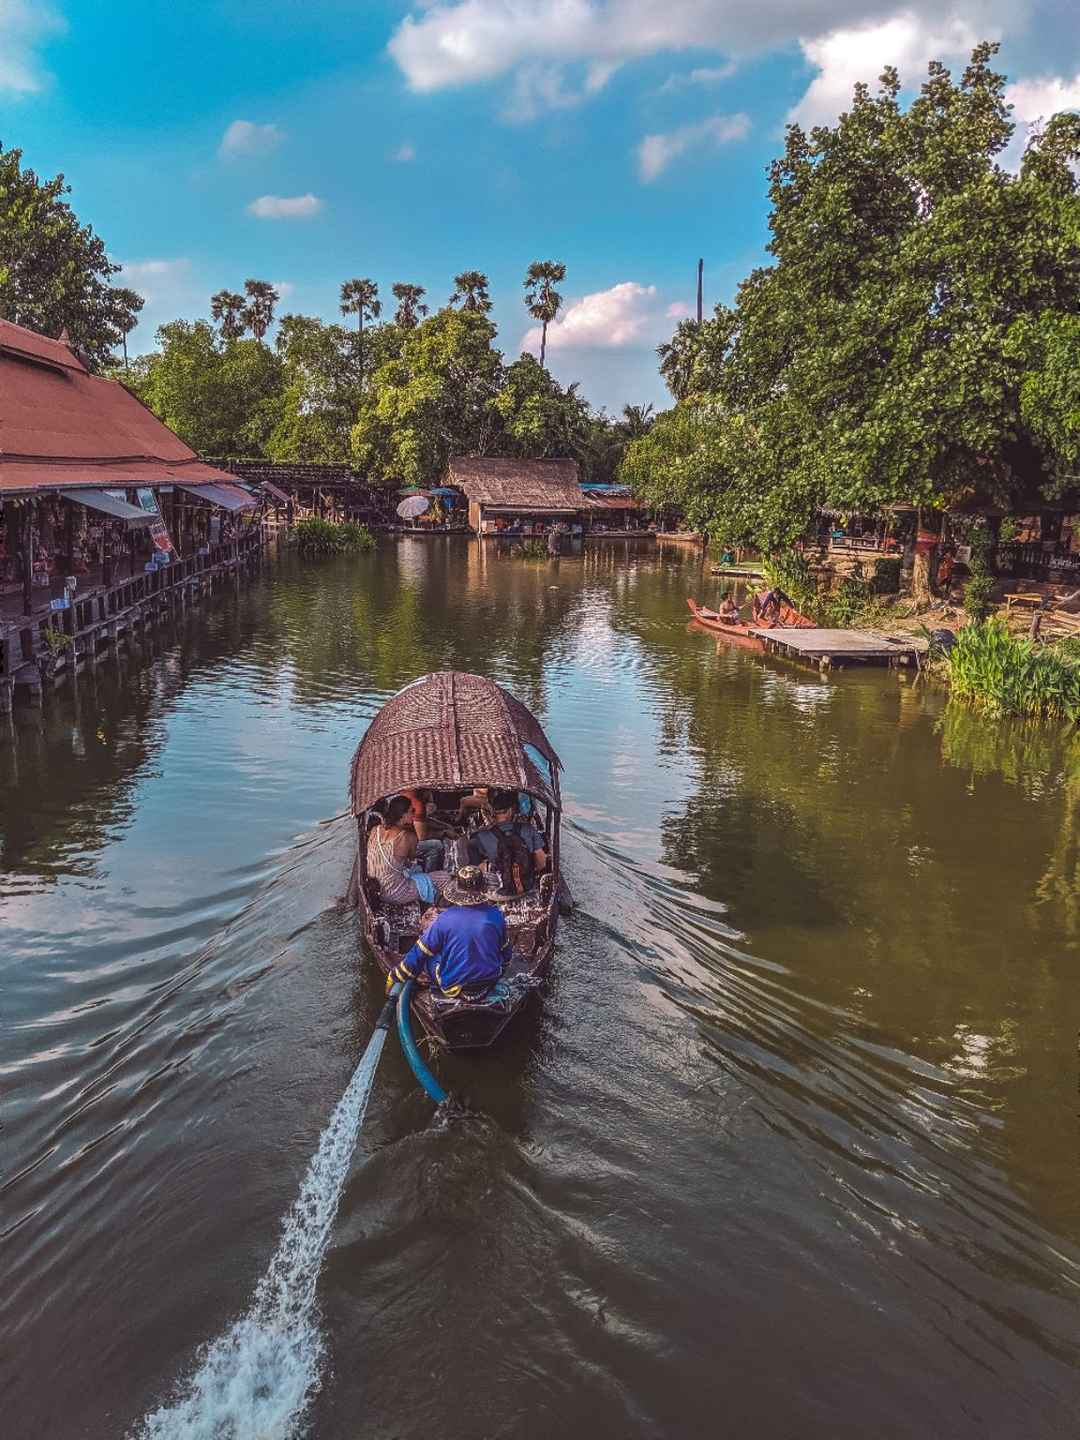 Take a Visual Journey Across Central Thailand with me!